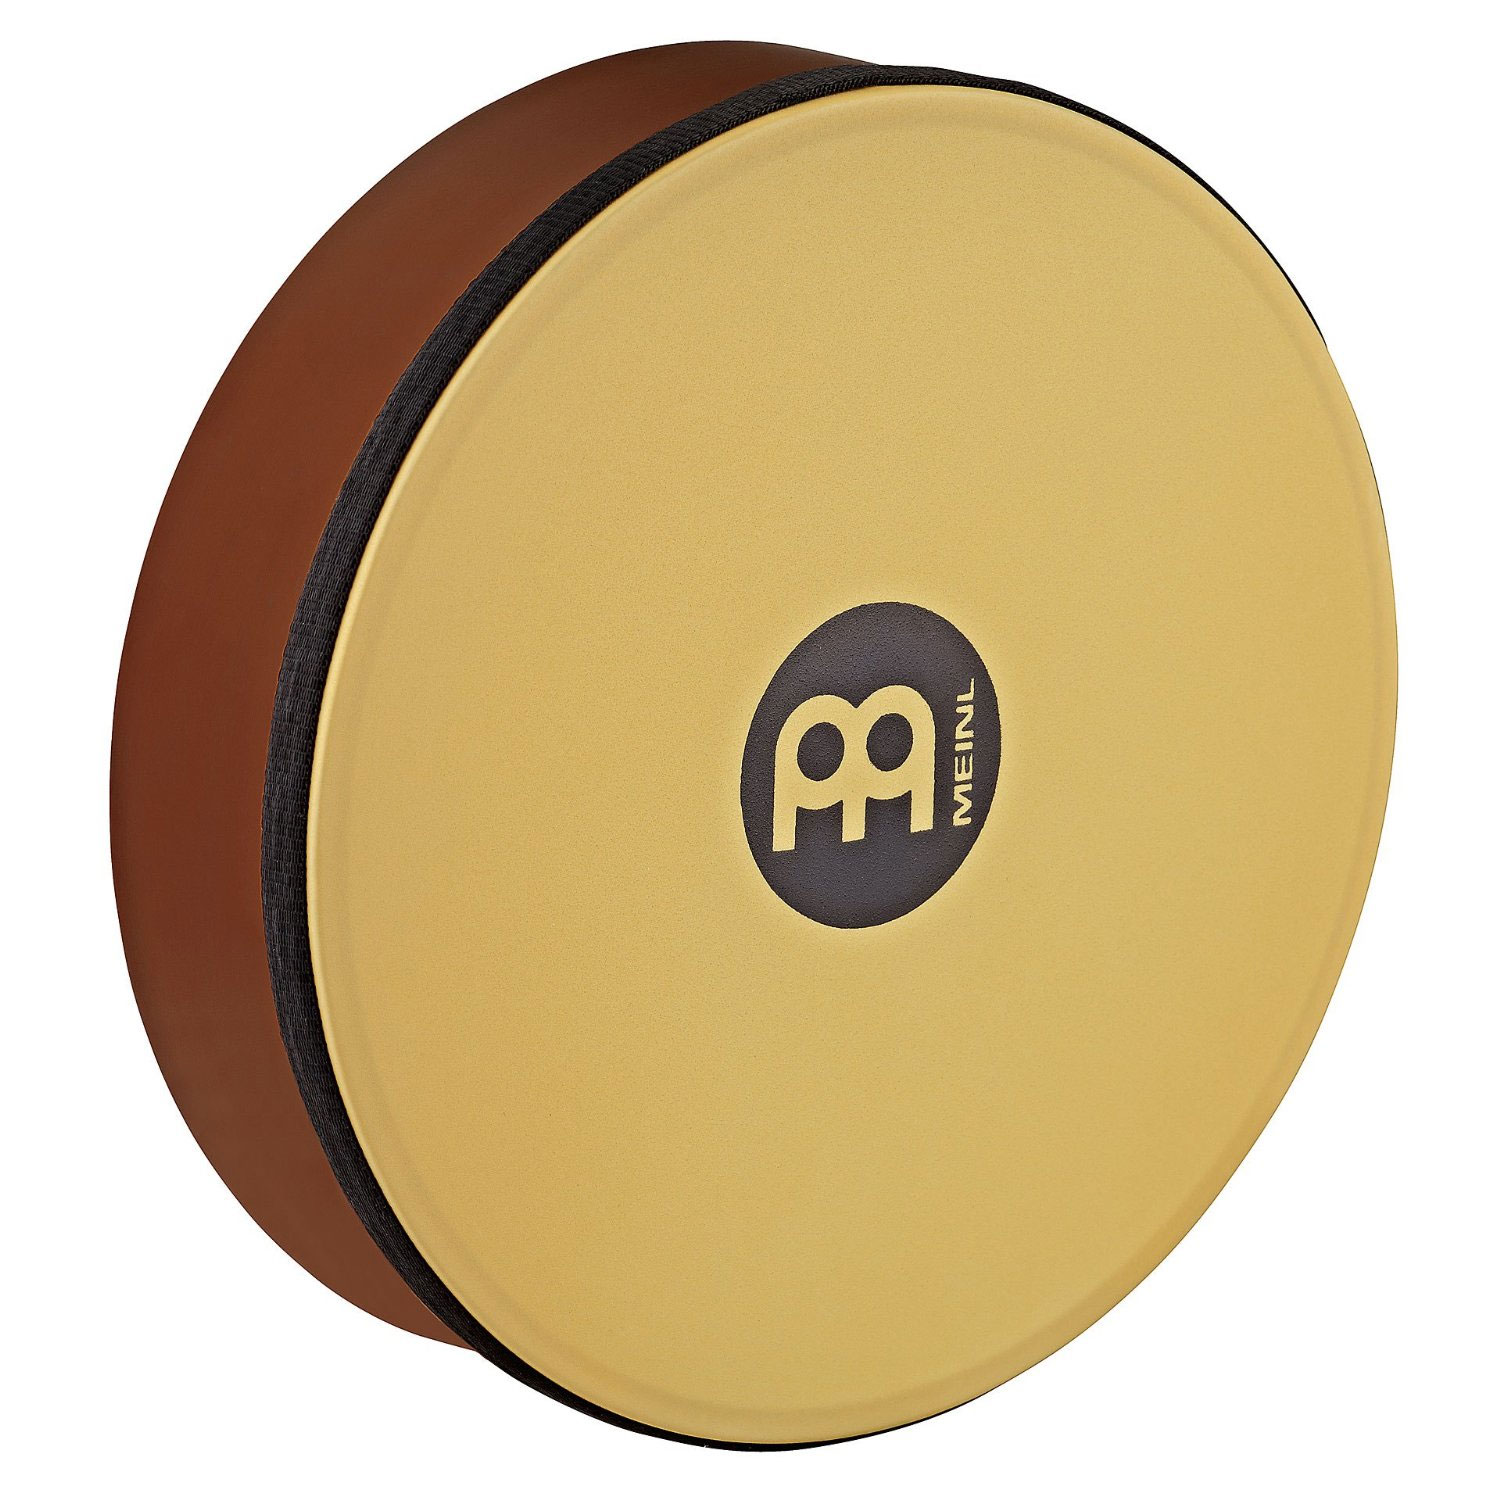 "Meinl 12"" Hand Drum with True Feel Head"